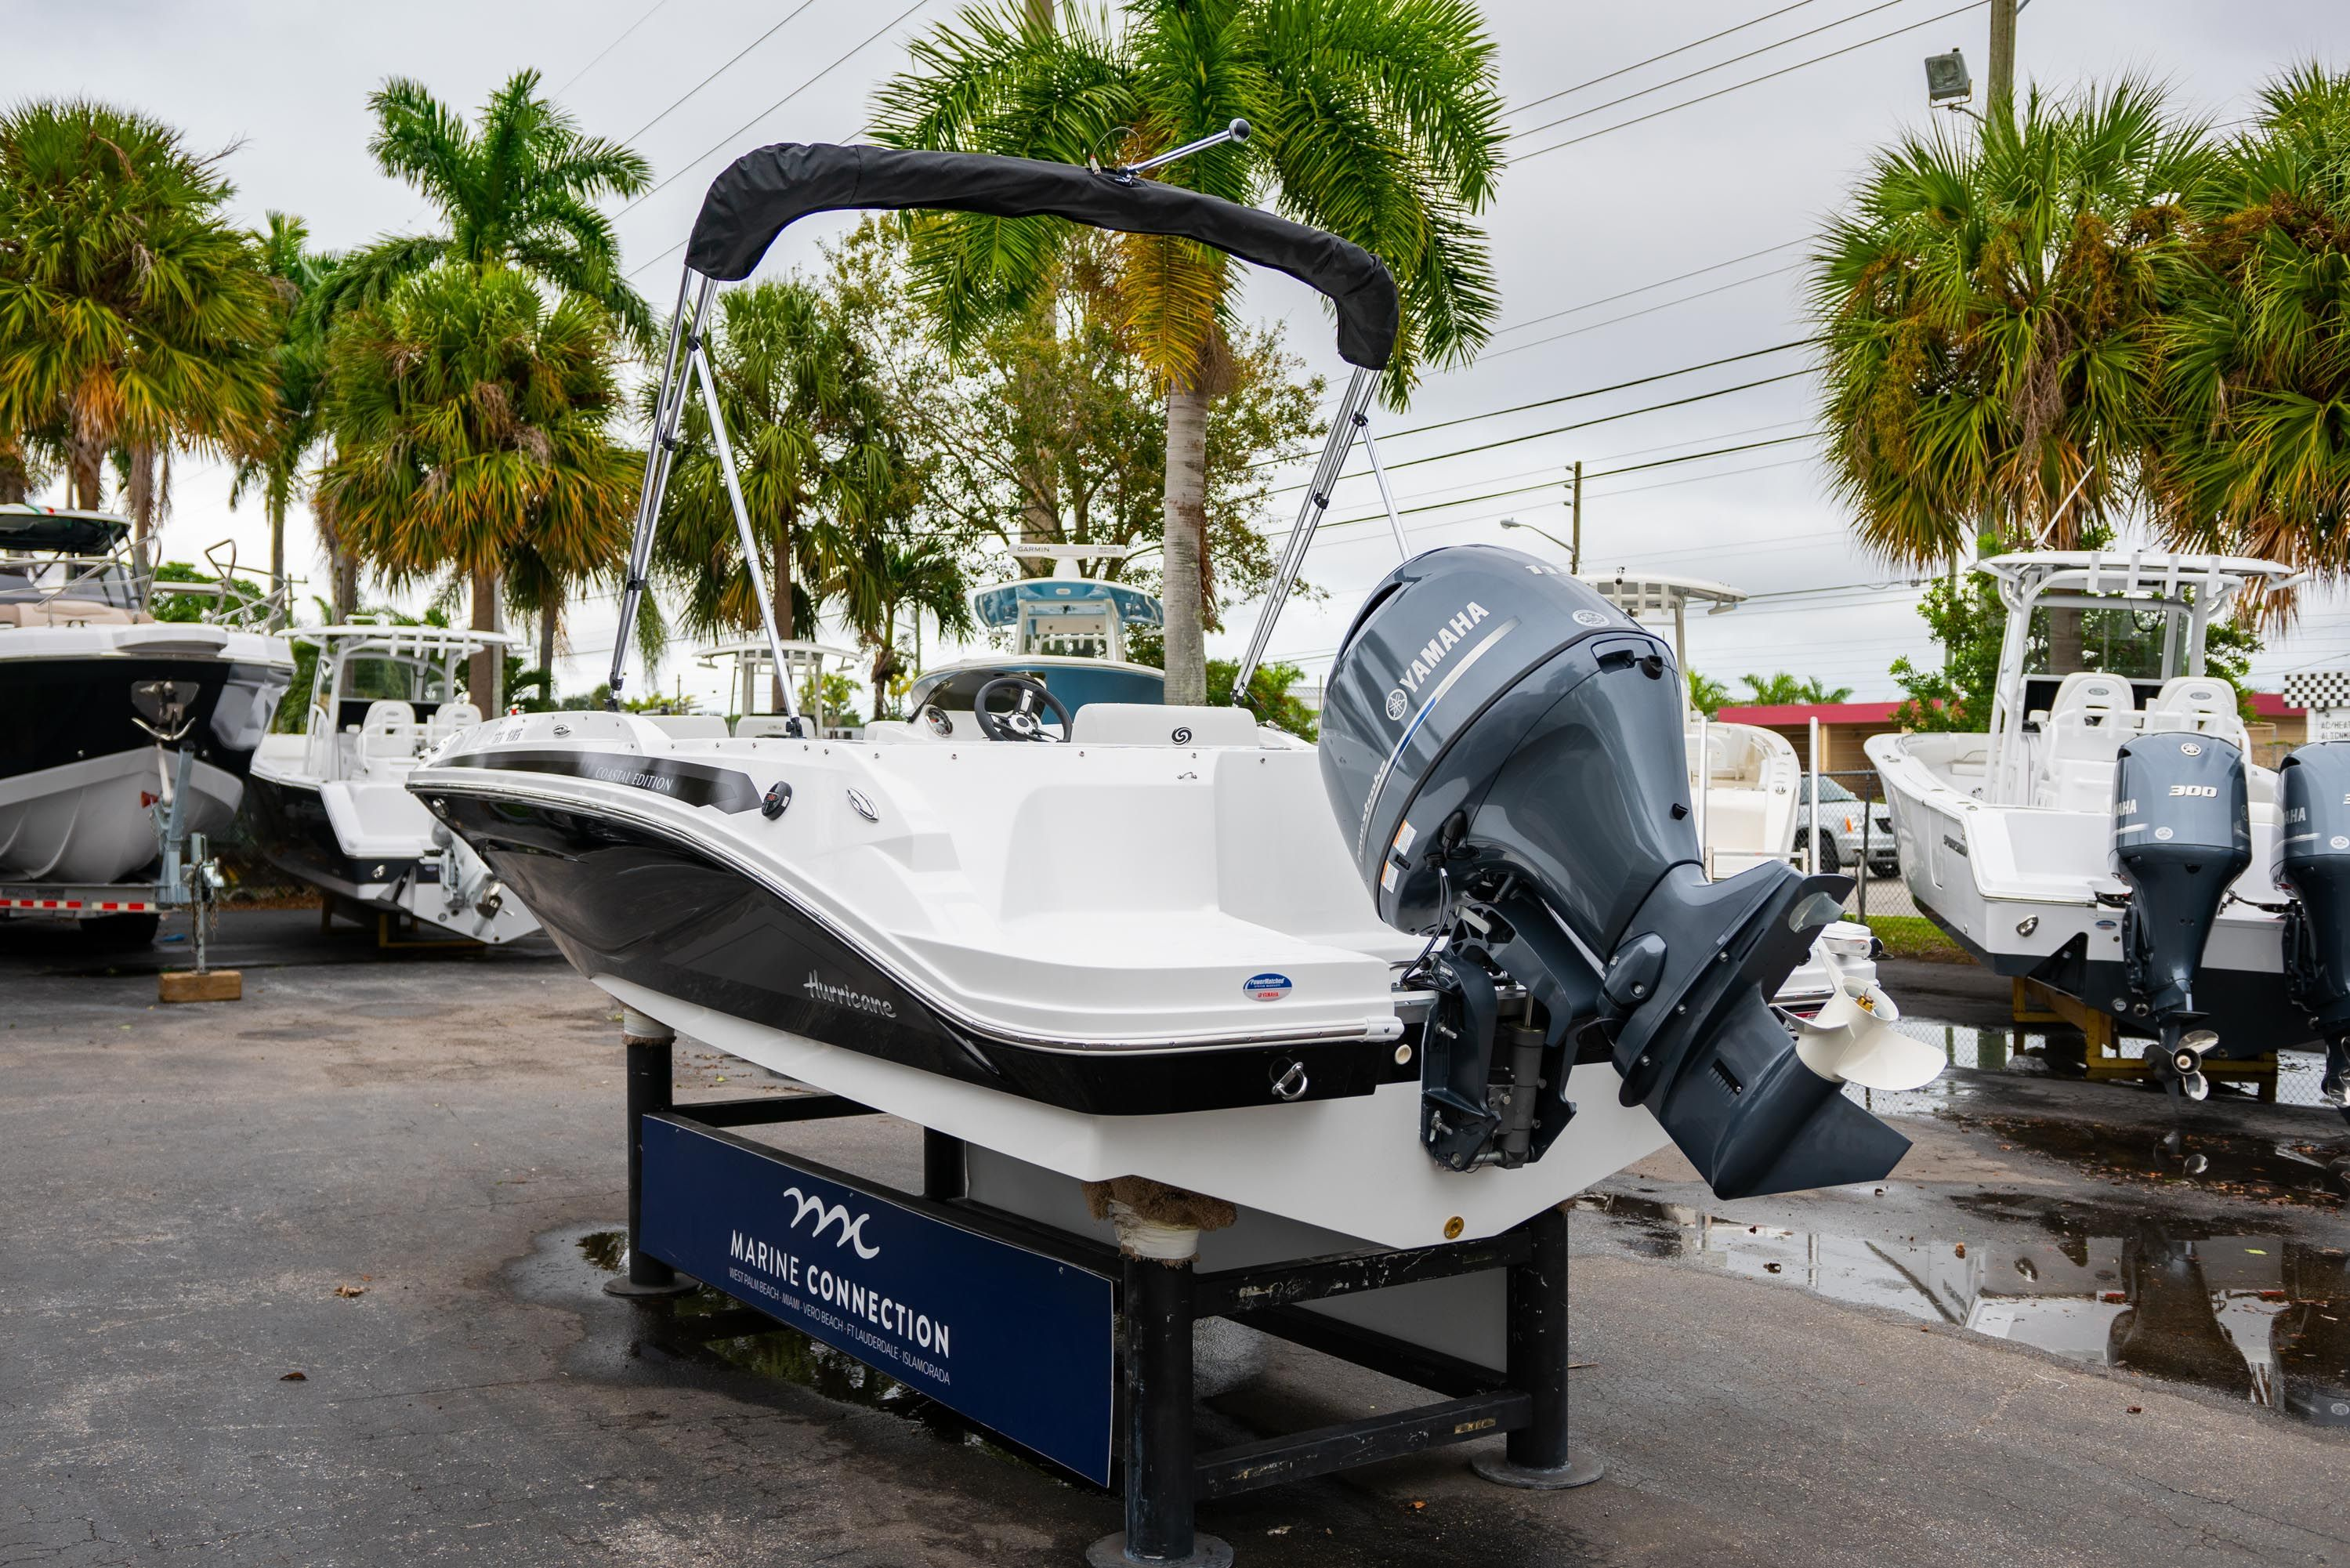 Thumbnail 5 for New 2020 Hurricane SS 185 OB boat for sale in West Palm Beach, FL